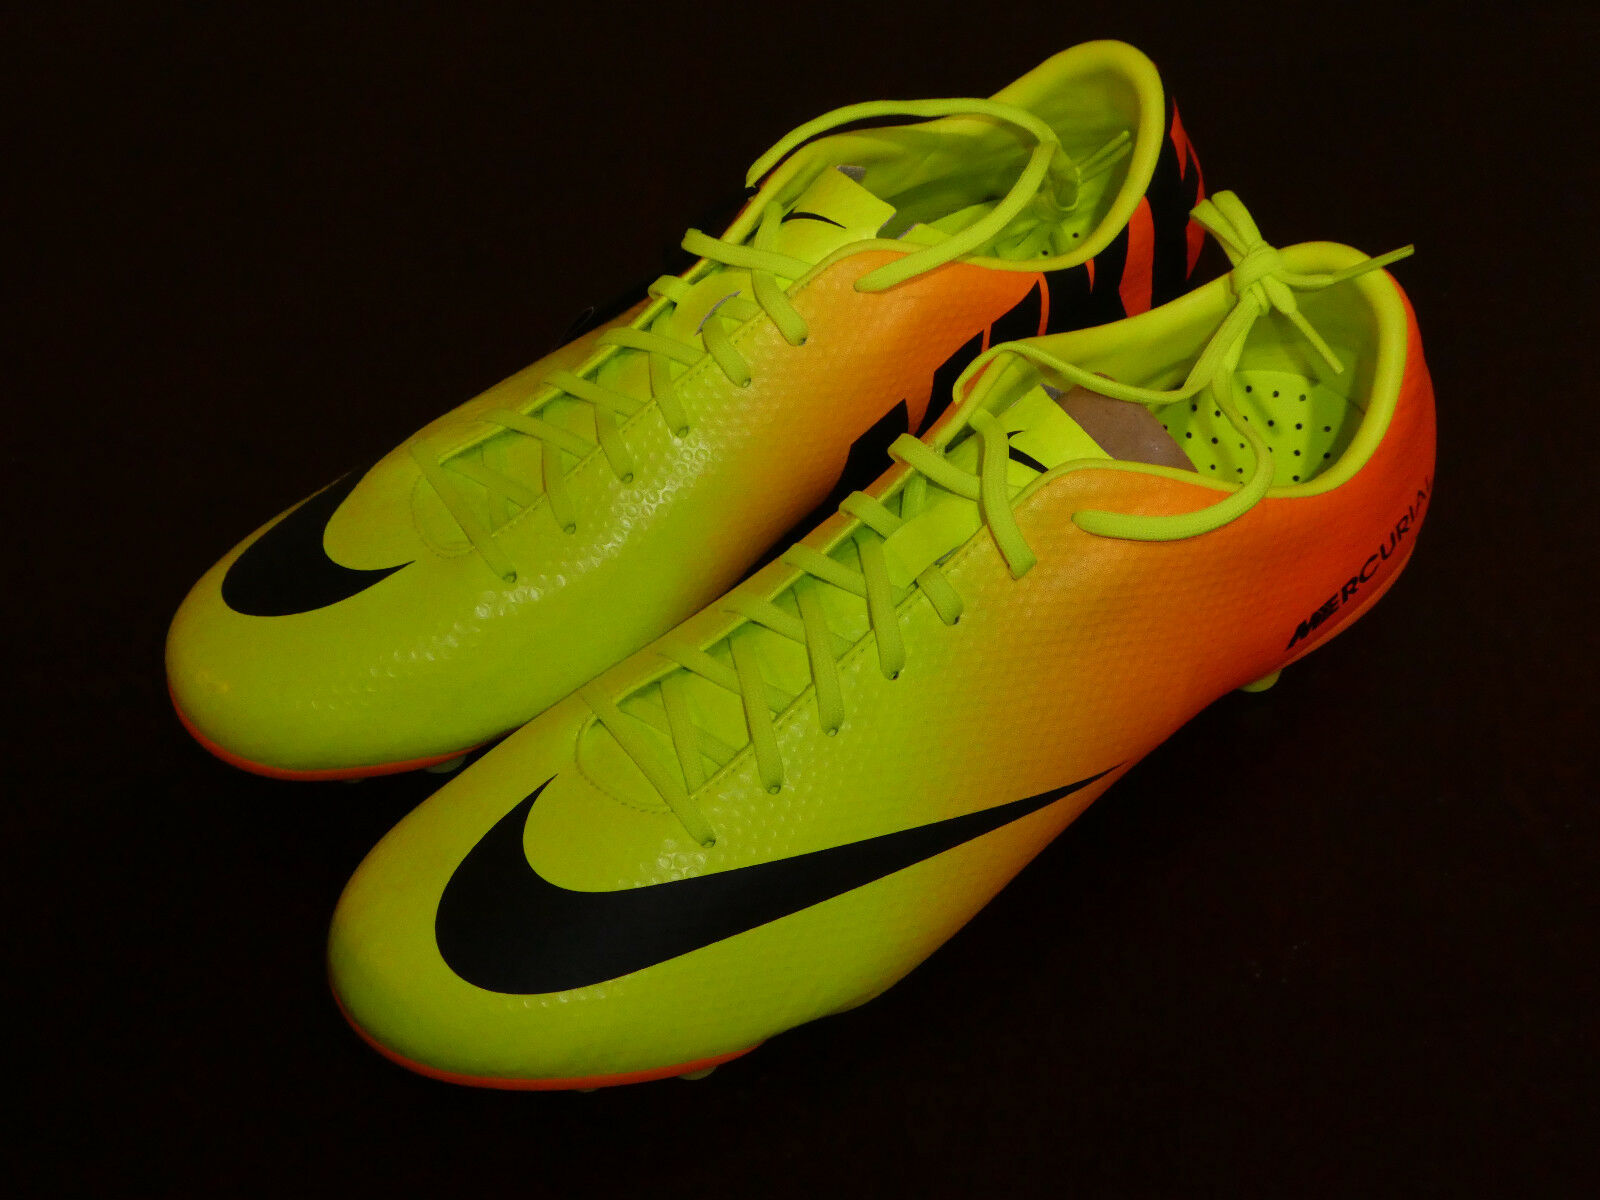 Nike Mercurial Veloce AG Artificial Grass Soccer Soccer Soccer Cleats new shoes 555069 708 f67ab9